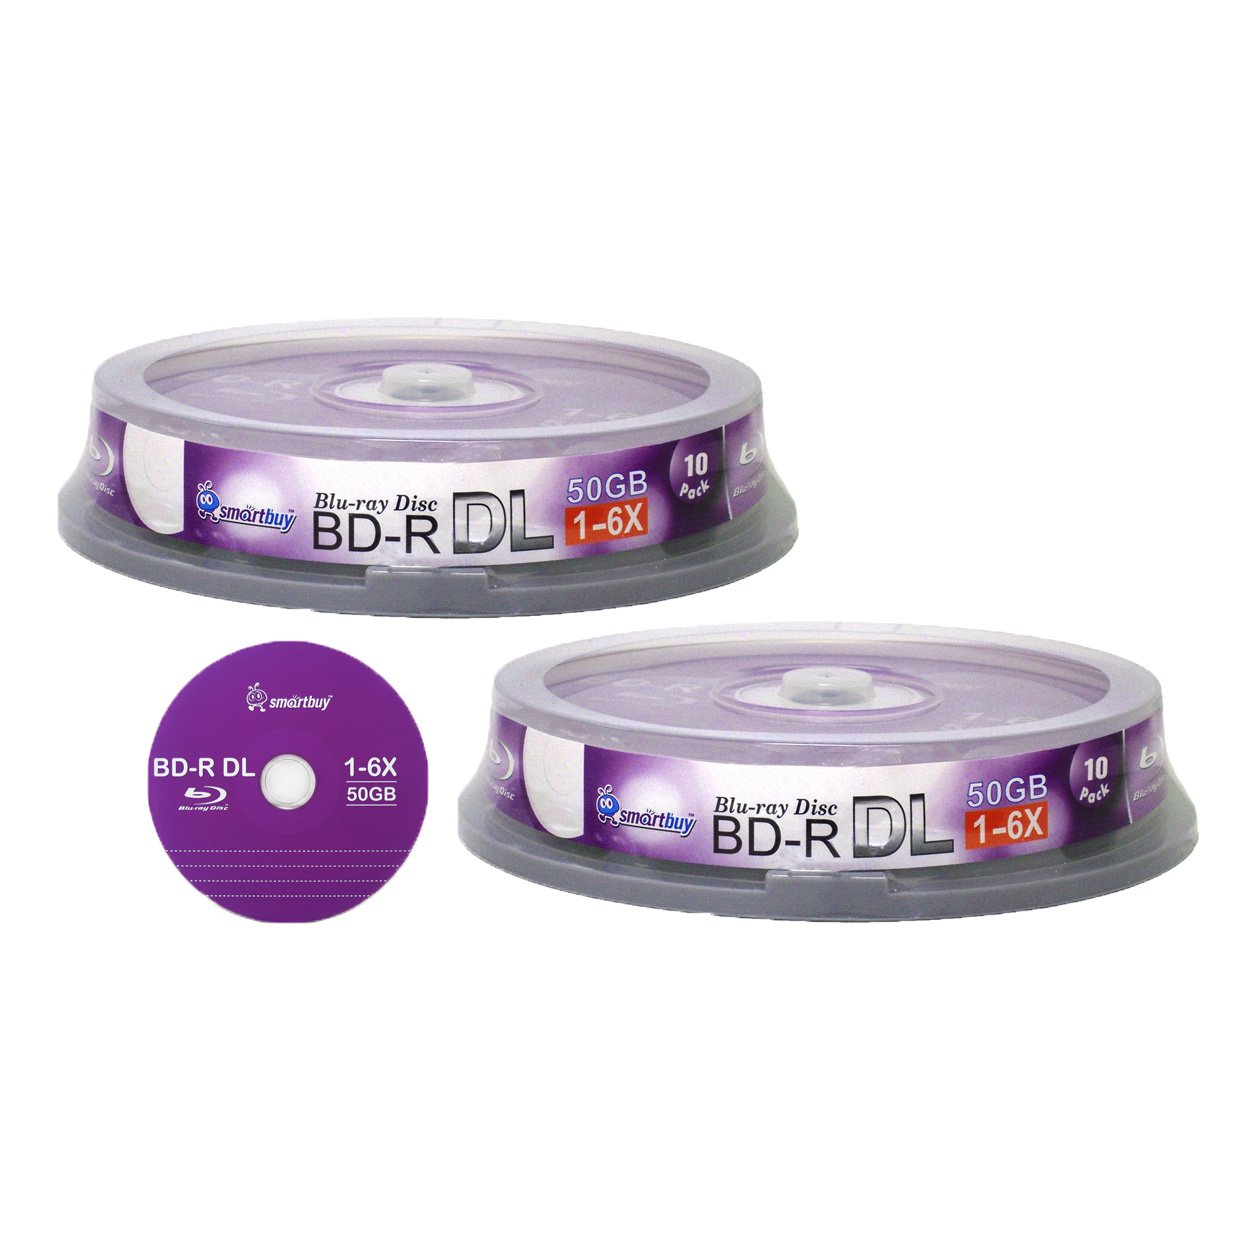 Smart Buy 20 Pack Bd-r Dl 50gb 6x Blu-ray Double Layer Recordable Disc Blank Logo Data Video Media 20-discs Spindle by Smart Buy